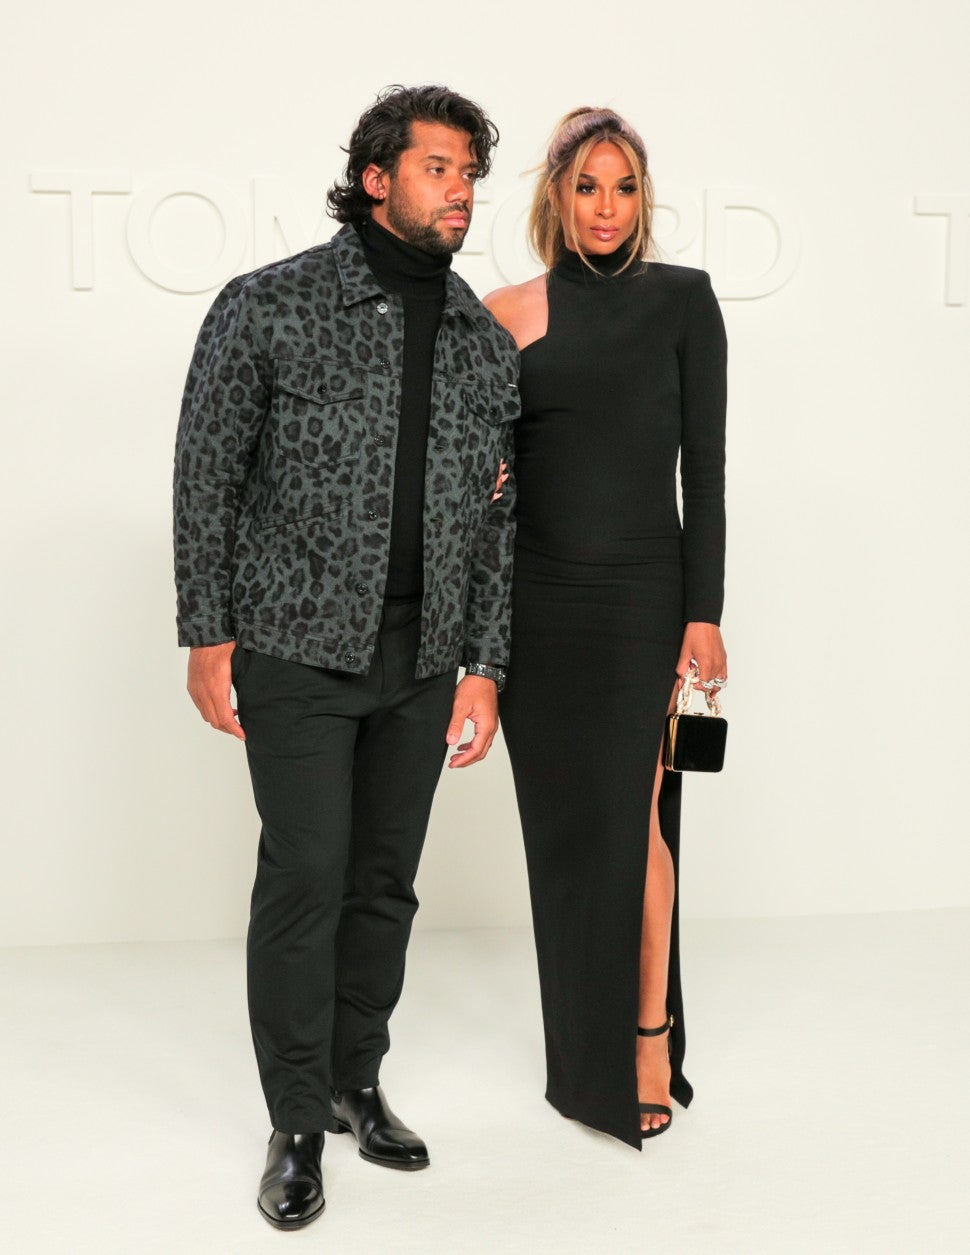 Russell Wilson and Ciara at Tom Ford F/W 2020 fashion show